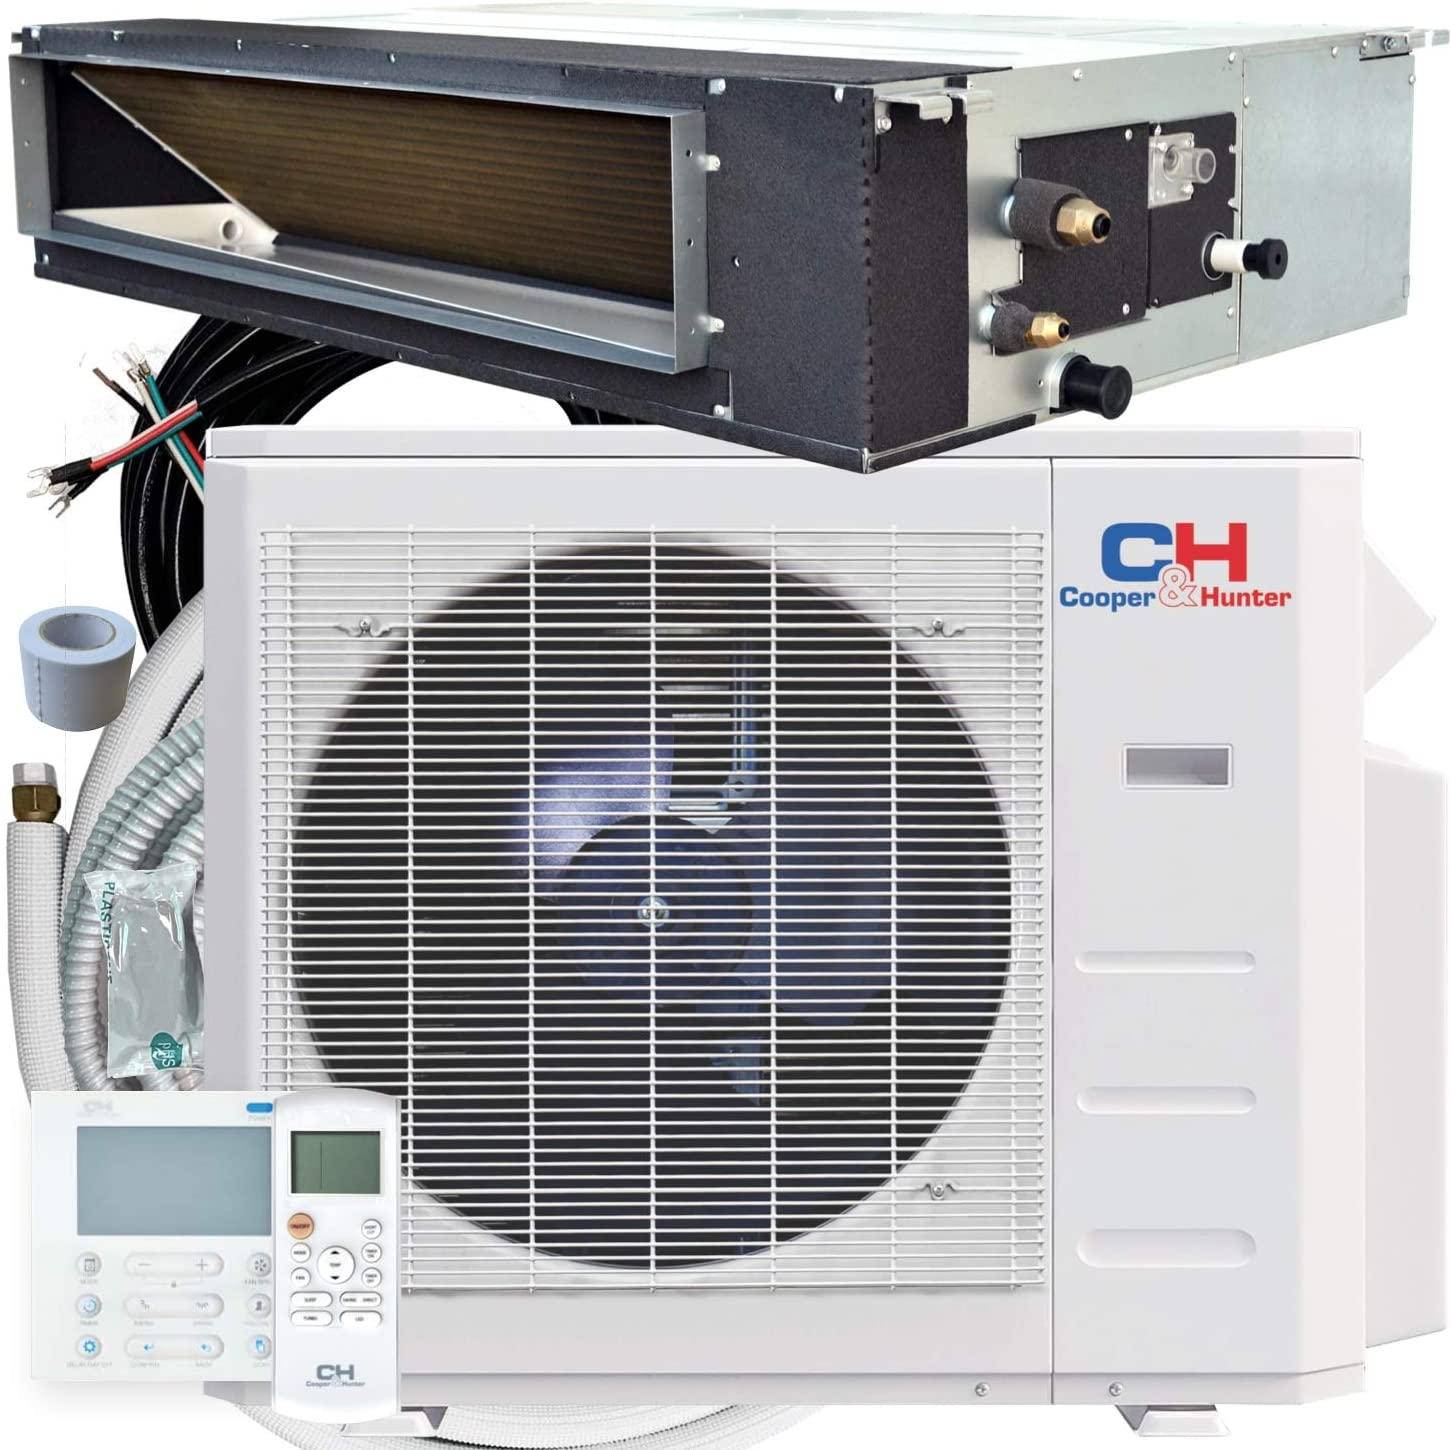 Cooper & Hunter 12,000 BTU Concealed Slim Duct Mini Split AC/Heating system, Built-in Water Pump, Pre-Charged, Including 25ft Installation Kit, Remote, and Wall Thermostat